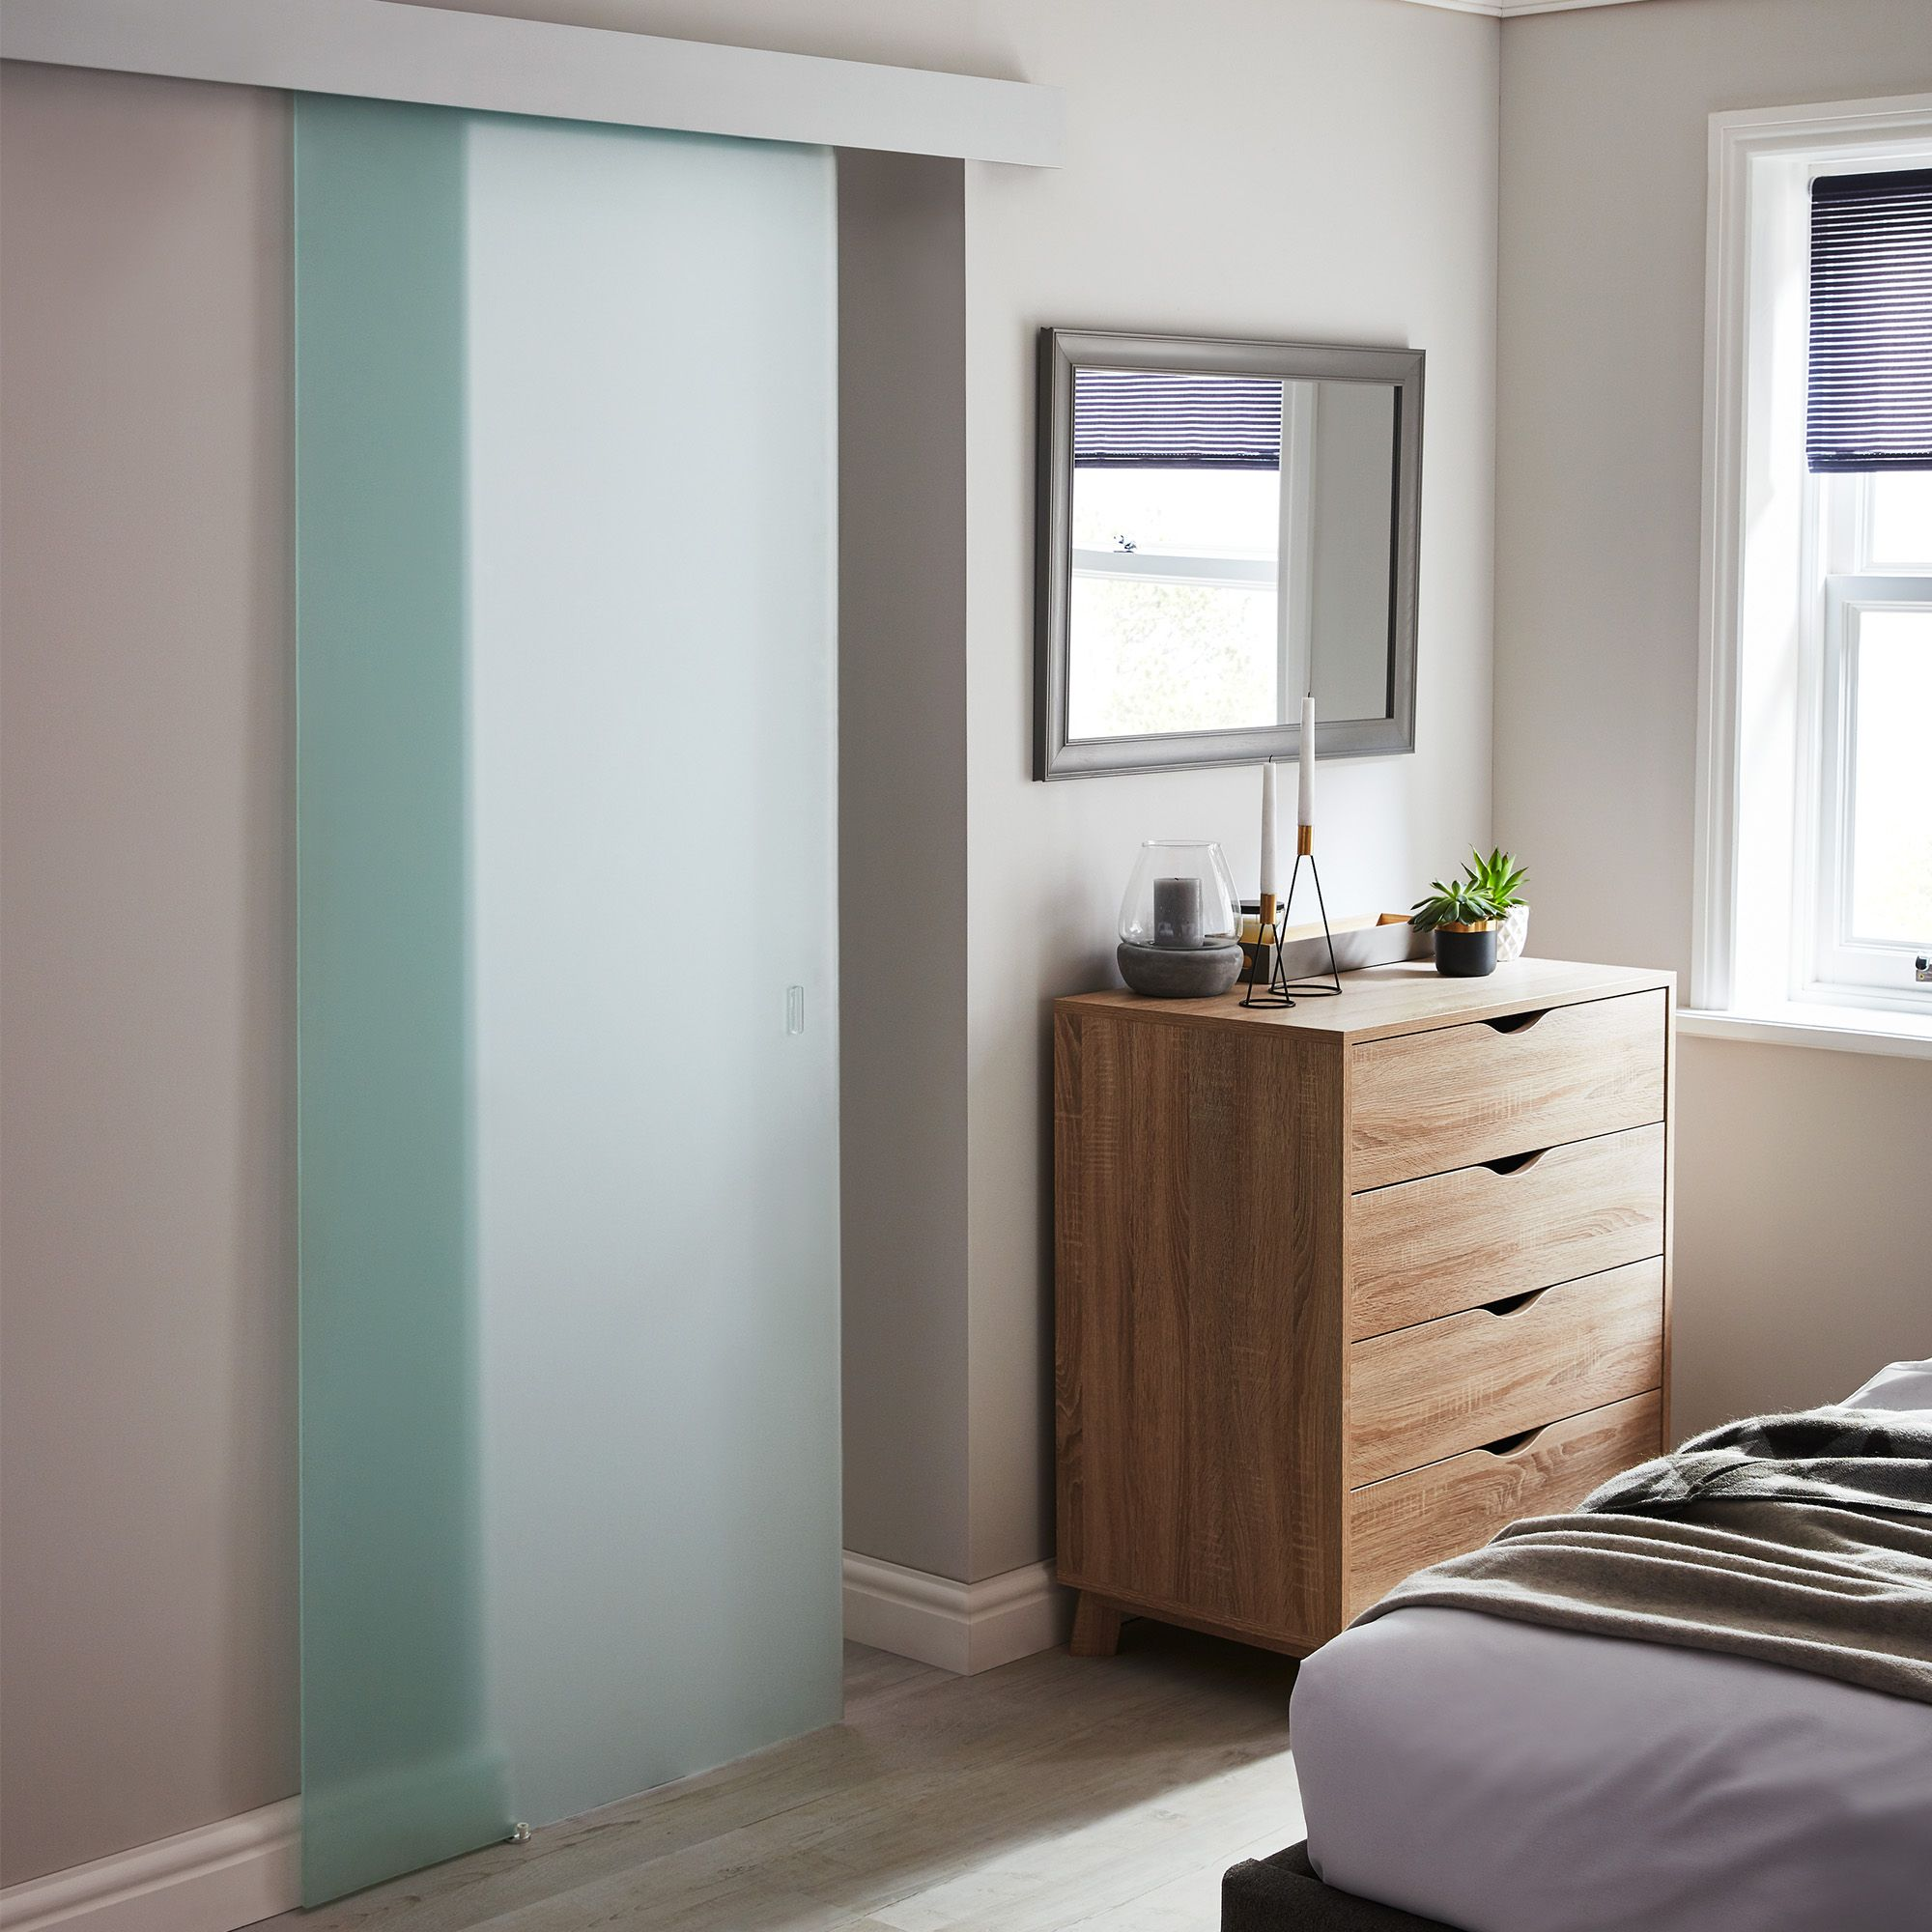 Frosted glass Internal Sliding door, (H)2040mm (W)830mm